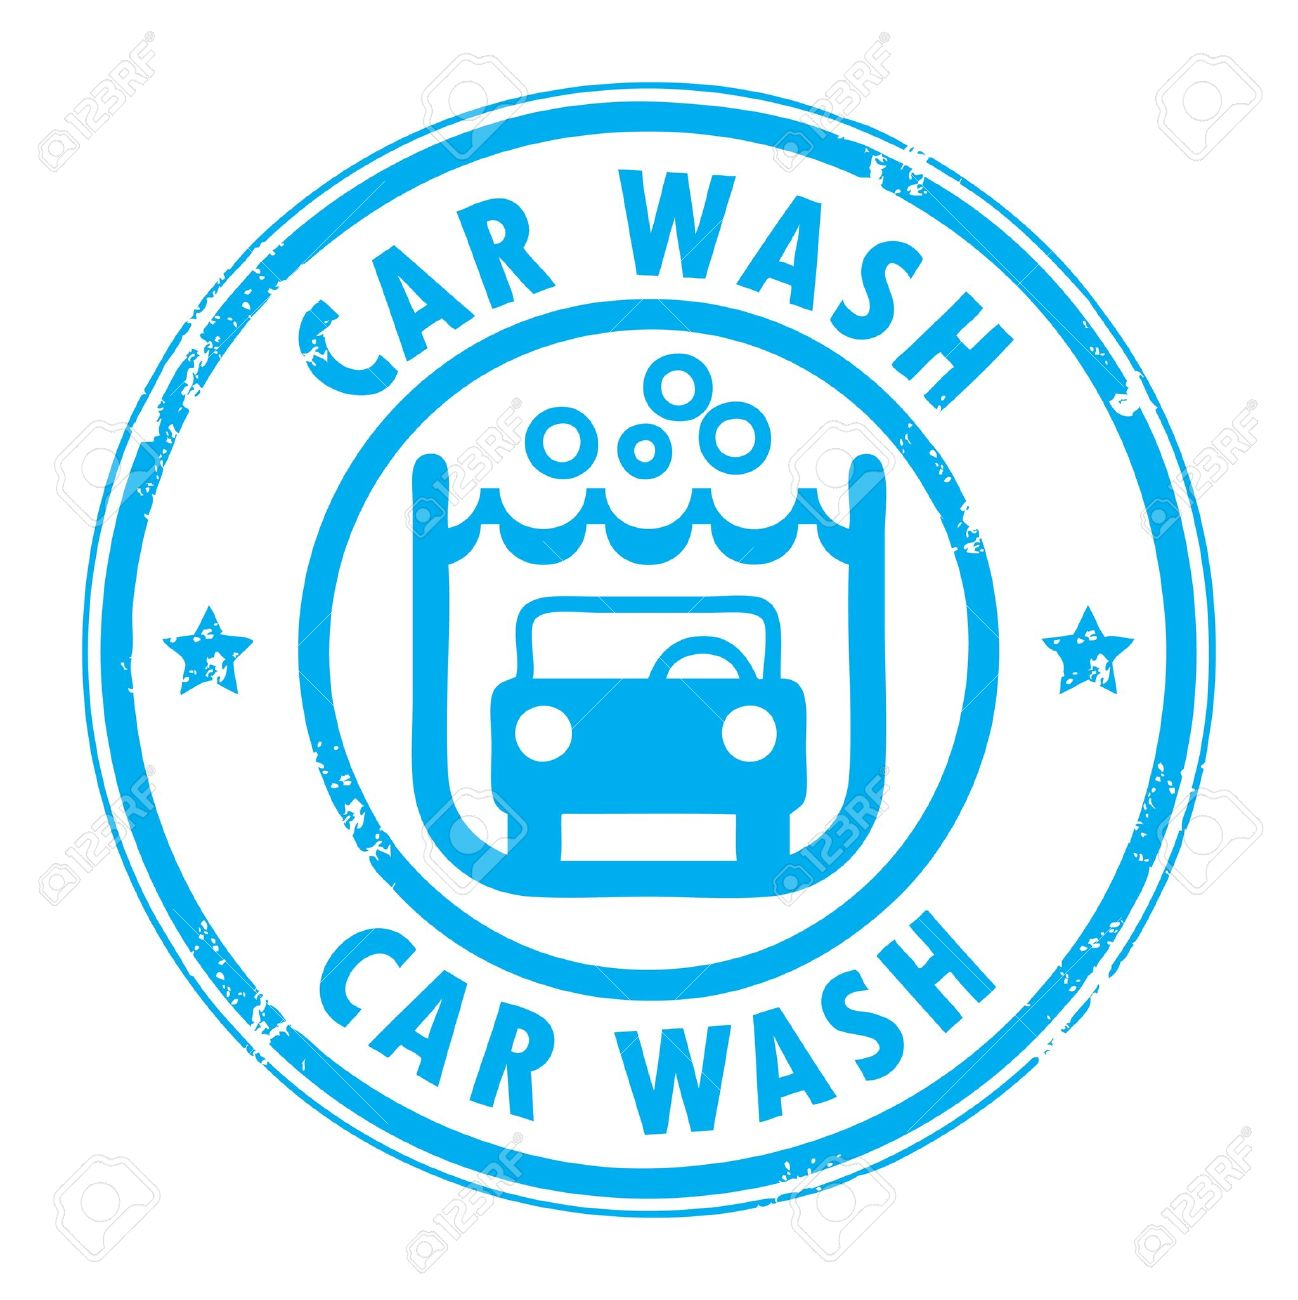 Car in car wash clipart graphic royalty free download Car wash images clipart free - ClipartFest graphic royalty free download